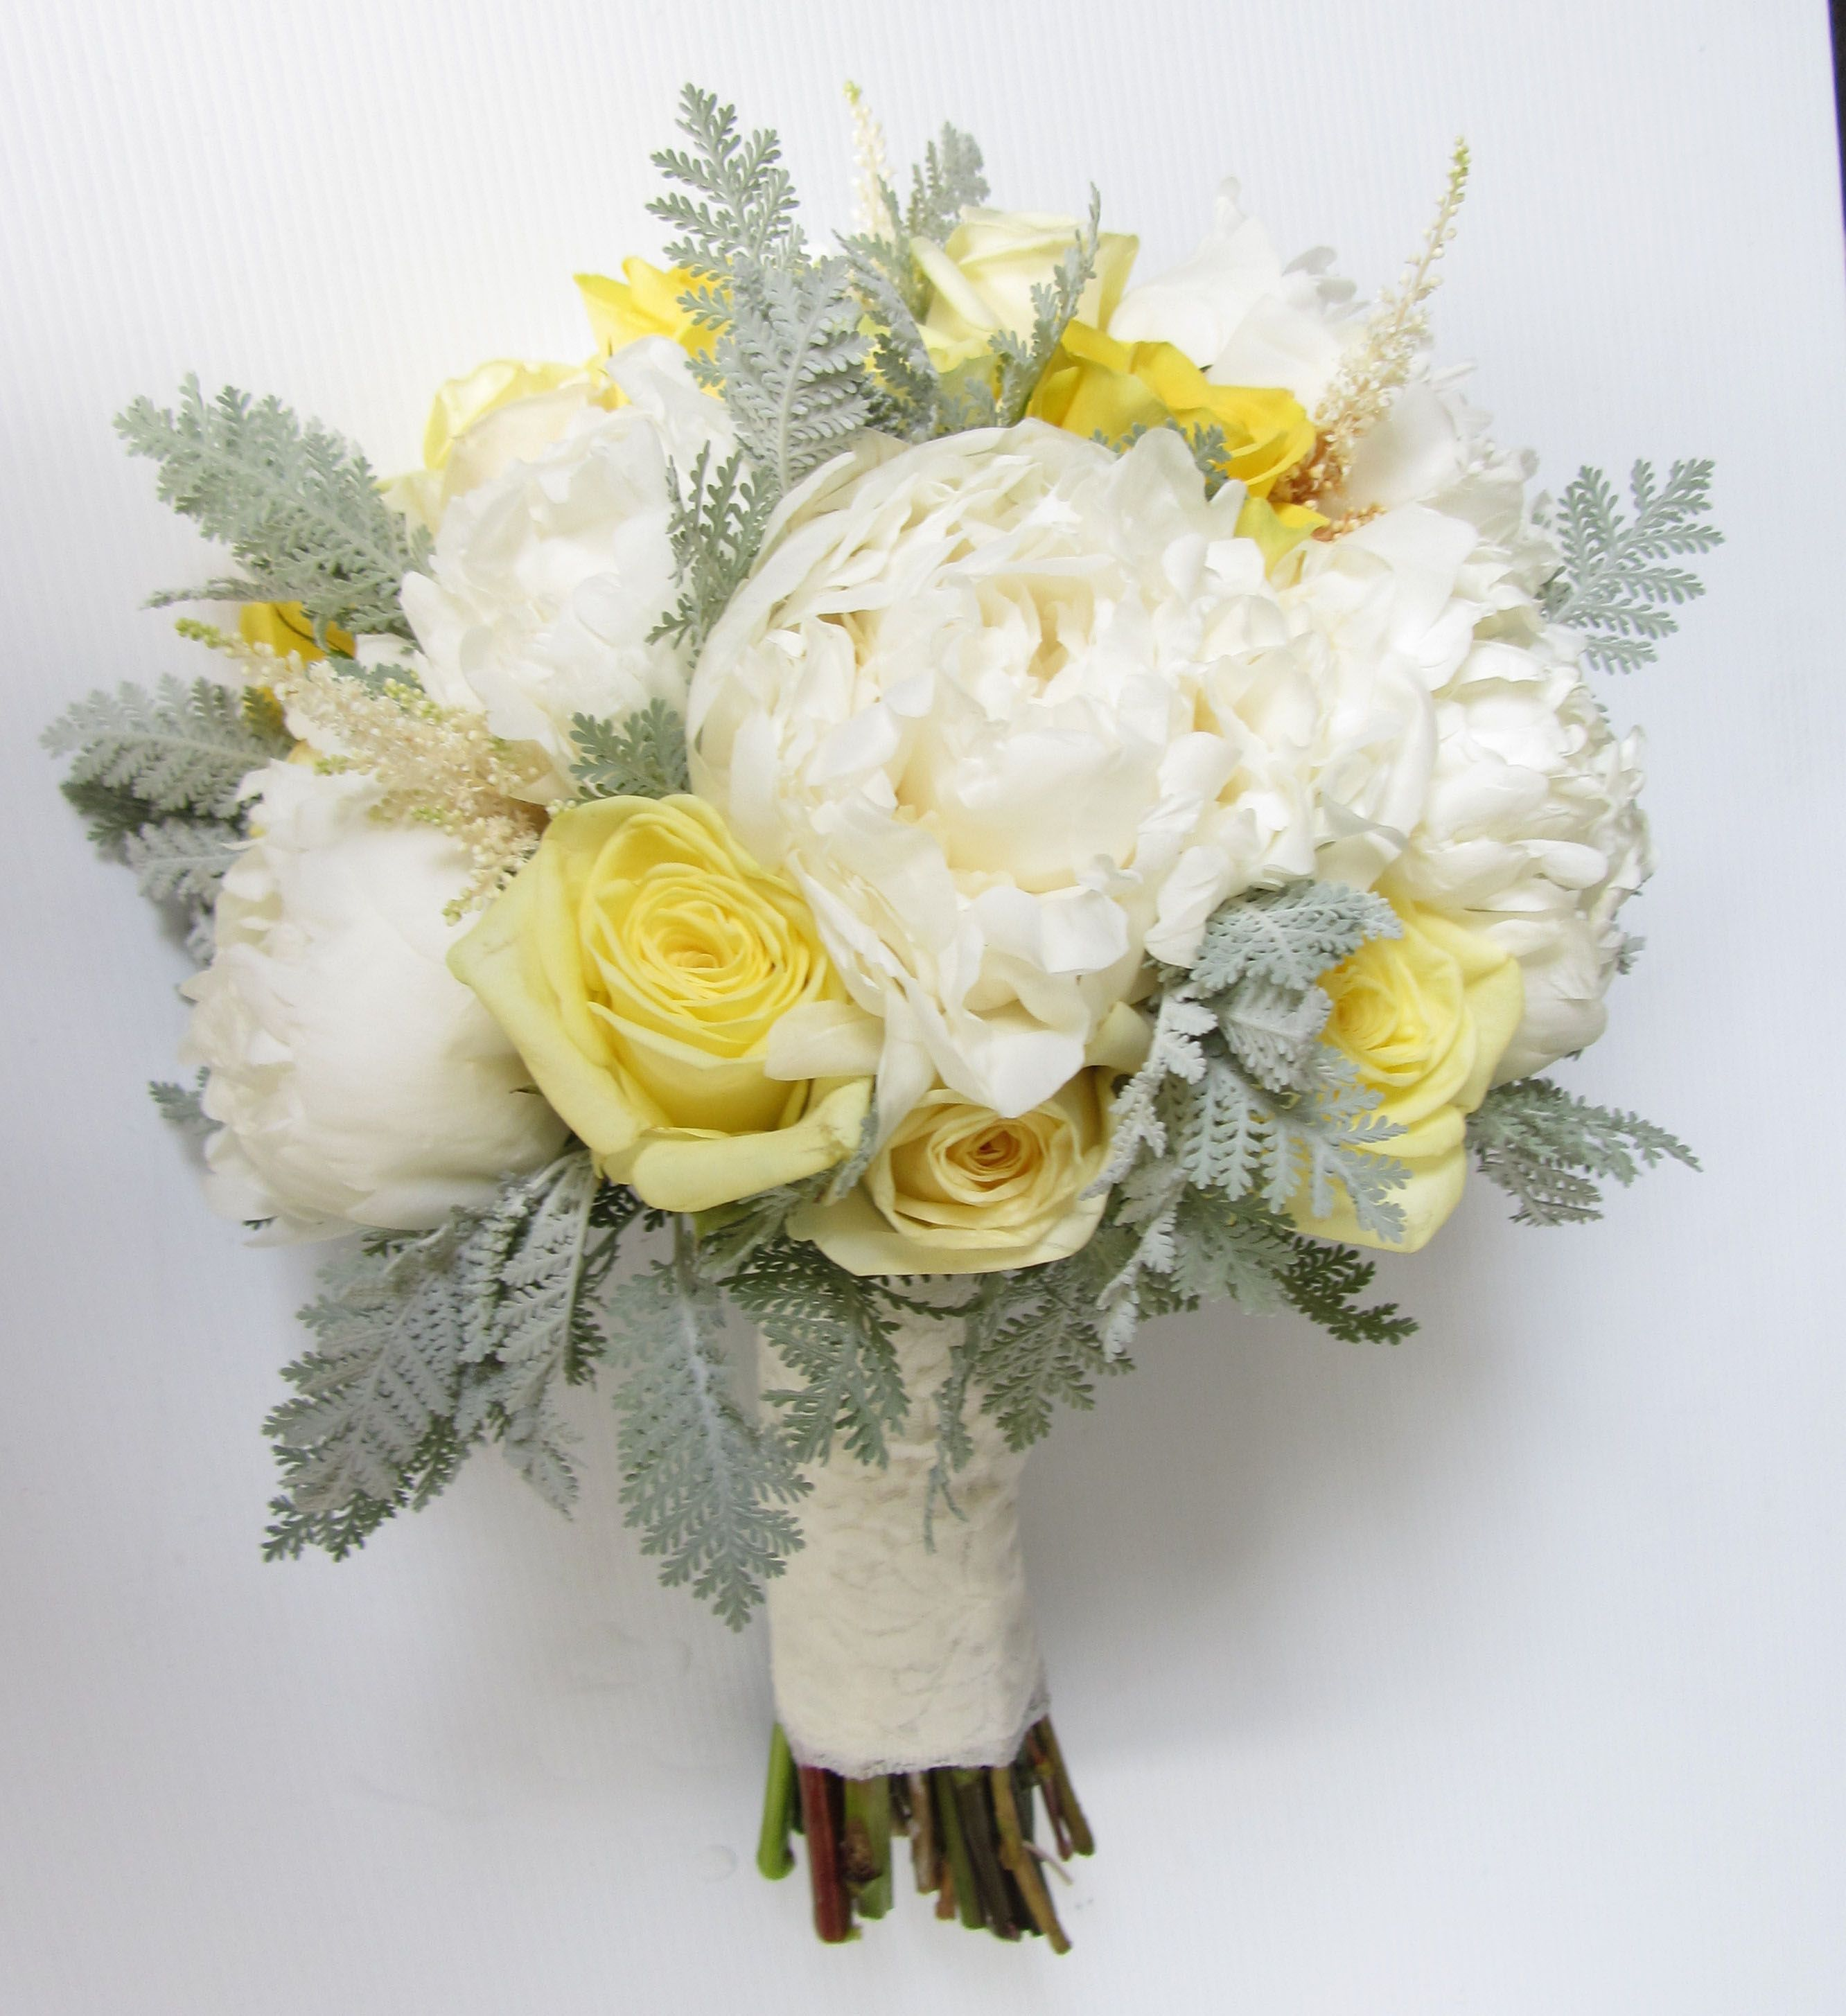 Yellow And Grey Wedding Flowers: Charmed Flowers Bouquet Of Lemon & Bright Yellow Roses And